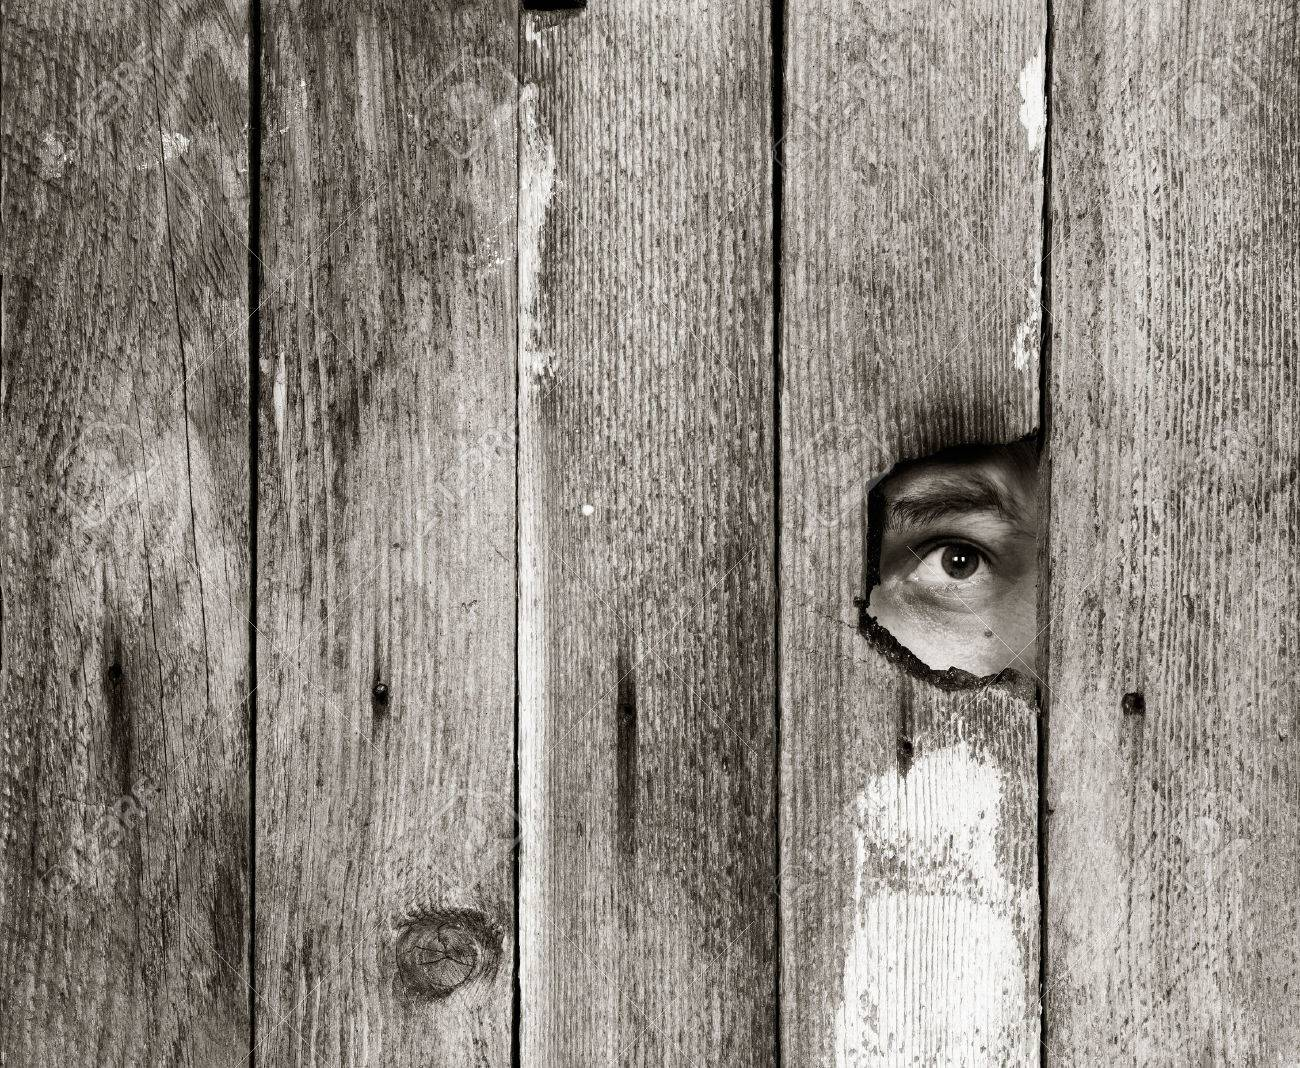 the eyes of a man spying through a hole in an old wooden fence. with space for posting information. black and white photo - 56429534